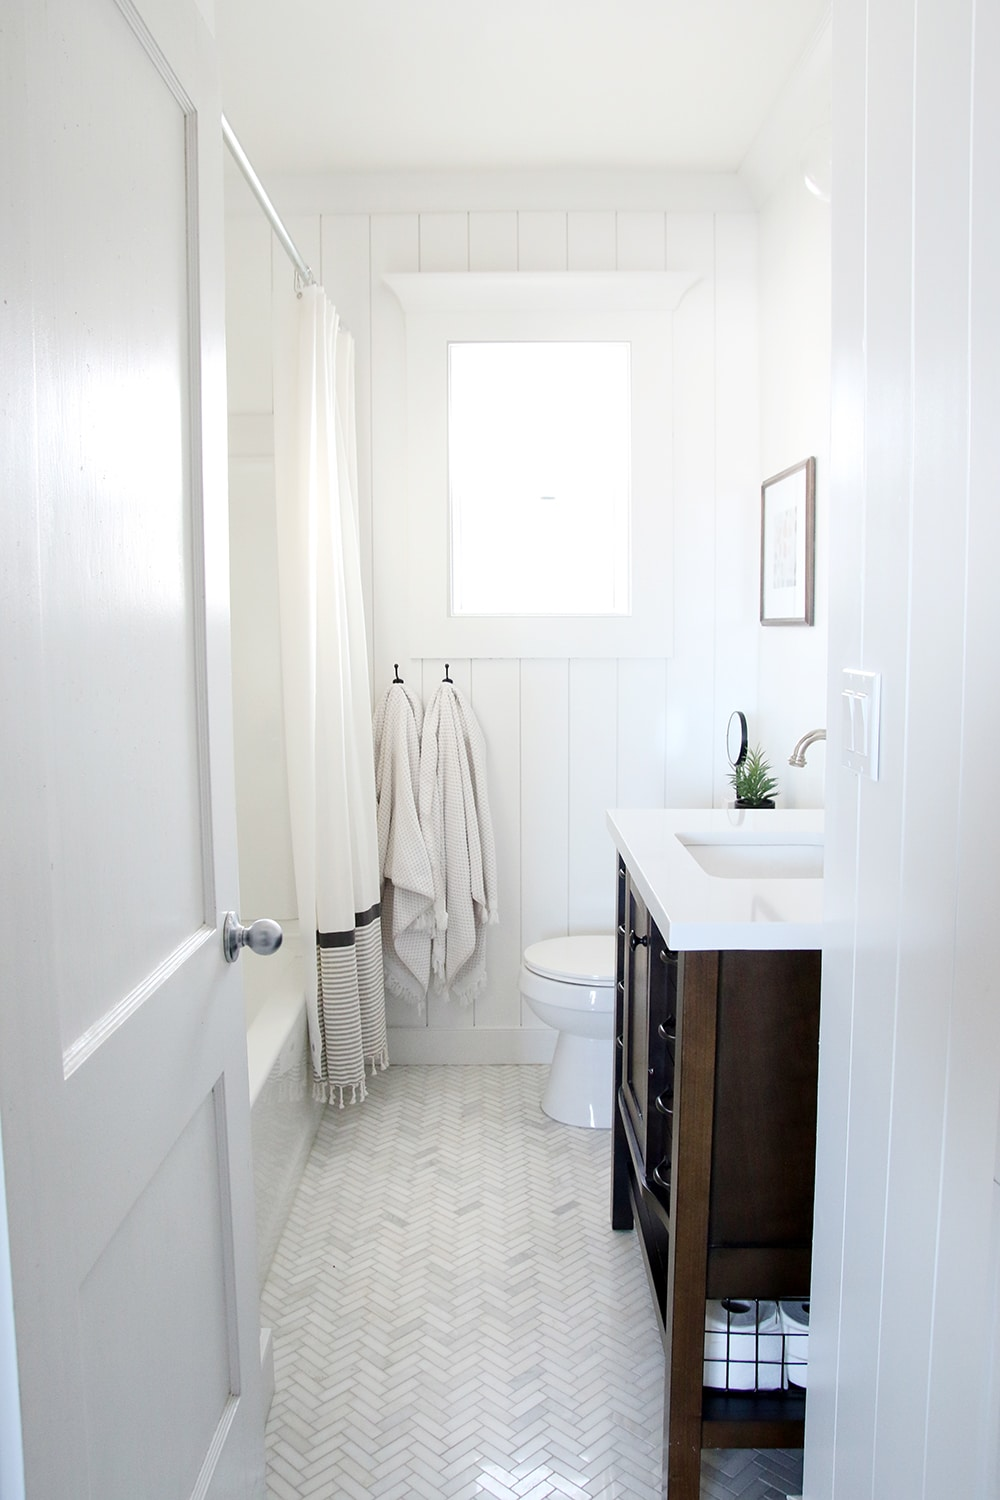 Small Bathroom Renovation How-To Videos - Chris Loves Julia on Small Bathroom Renovations  id=41601